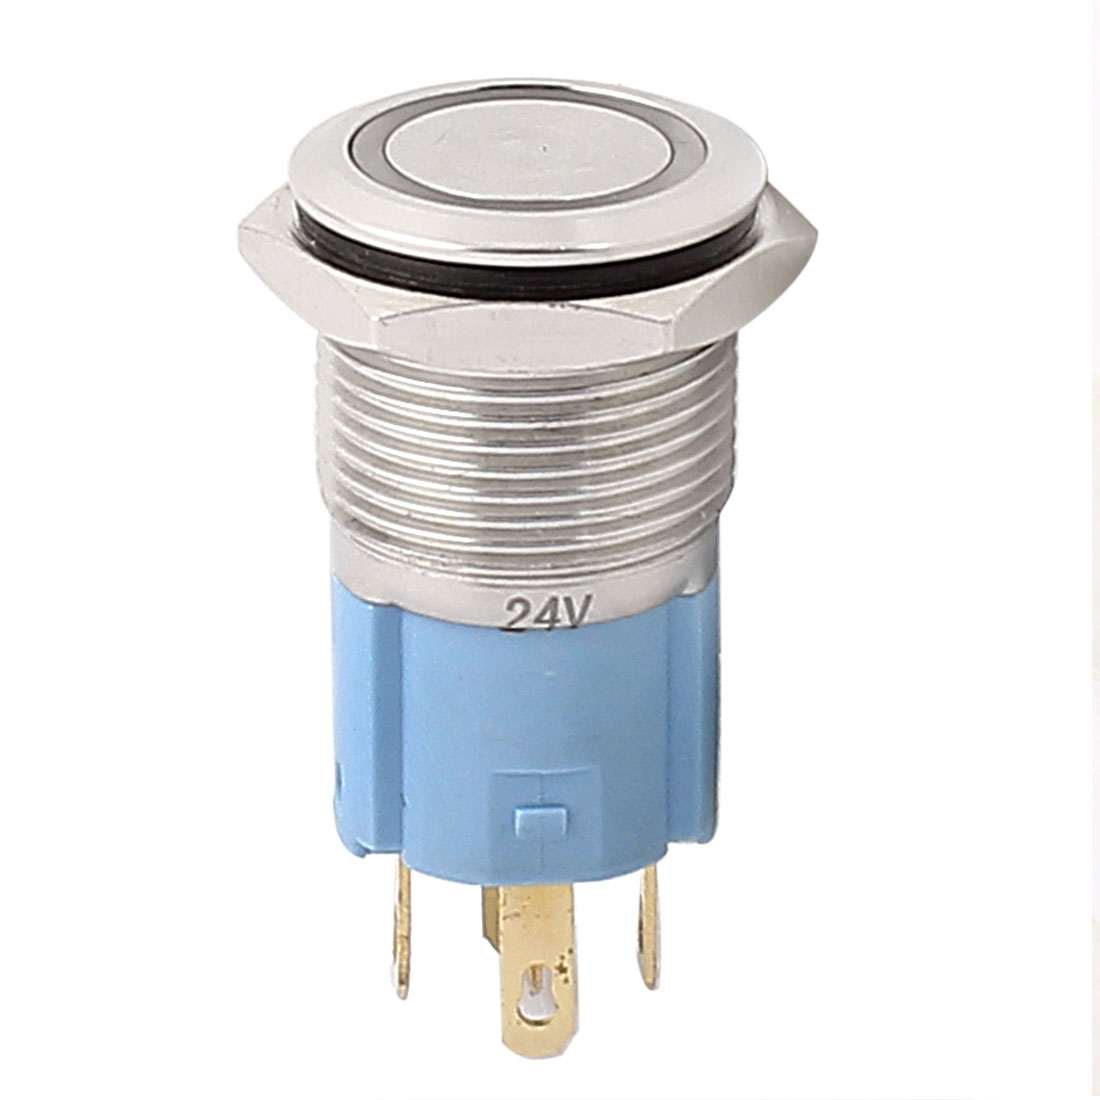 24V 16mm Thread Dia Green LED Angle Eyes Latching Metal Pushbutton Switch